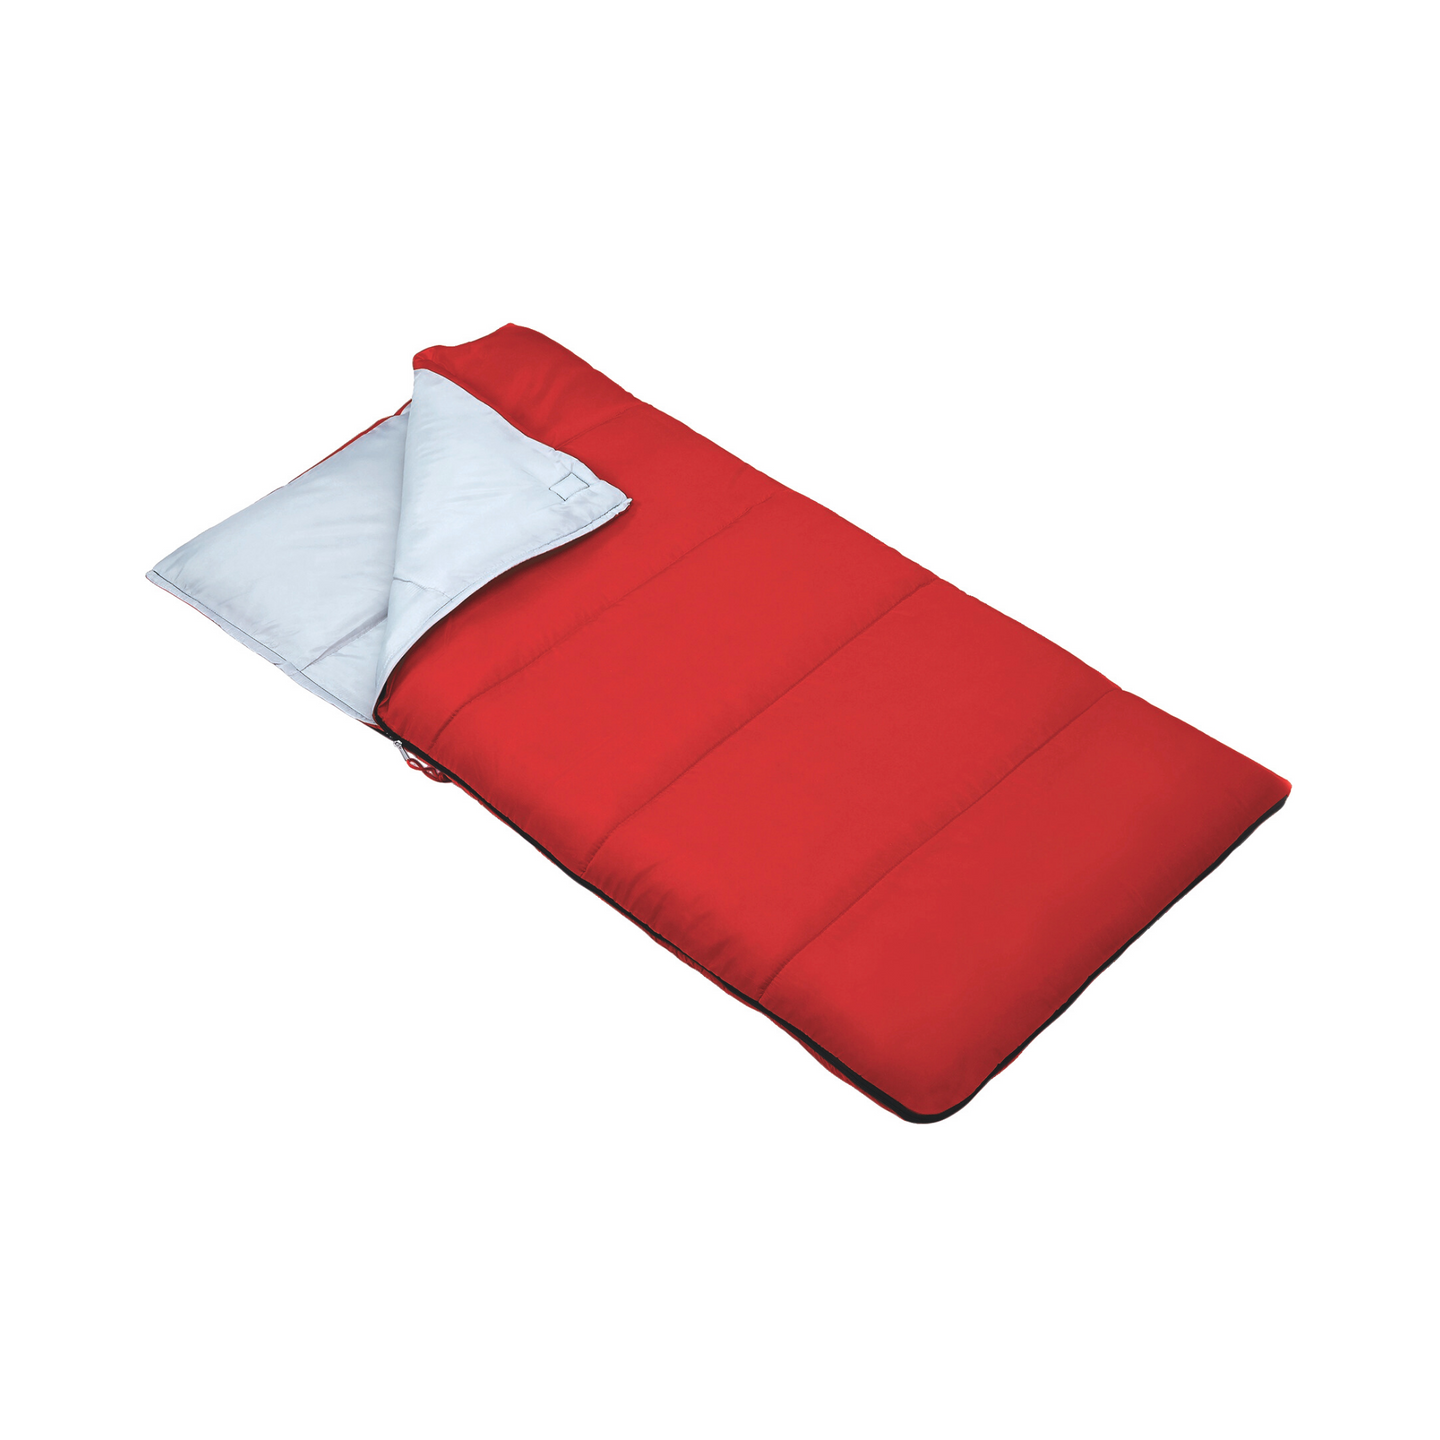 Outbound Kids' Compact Lightweight Camping Sleeping Bag: 43 Degree - Red